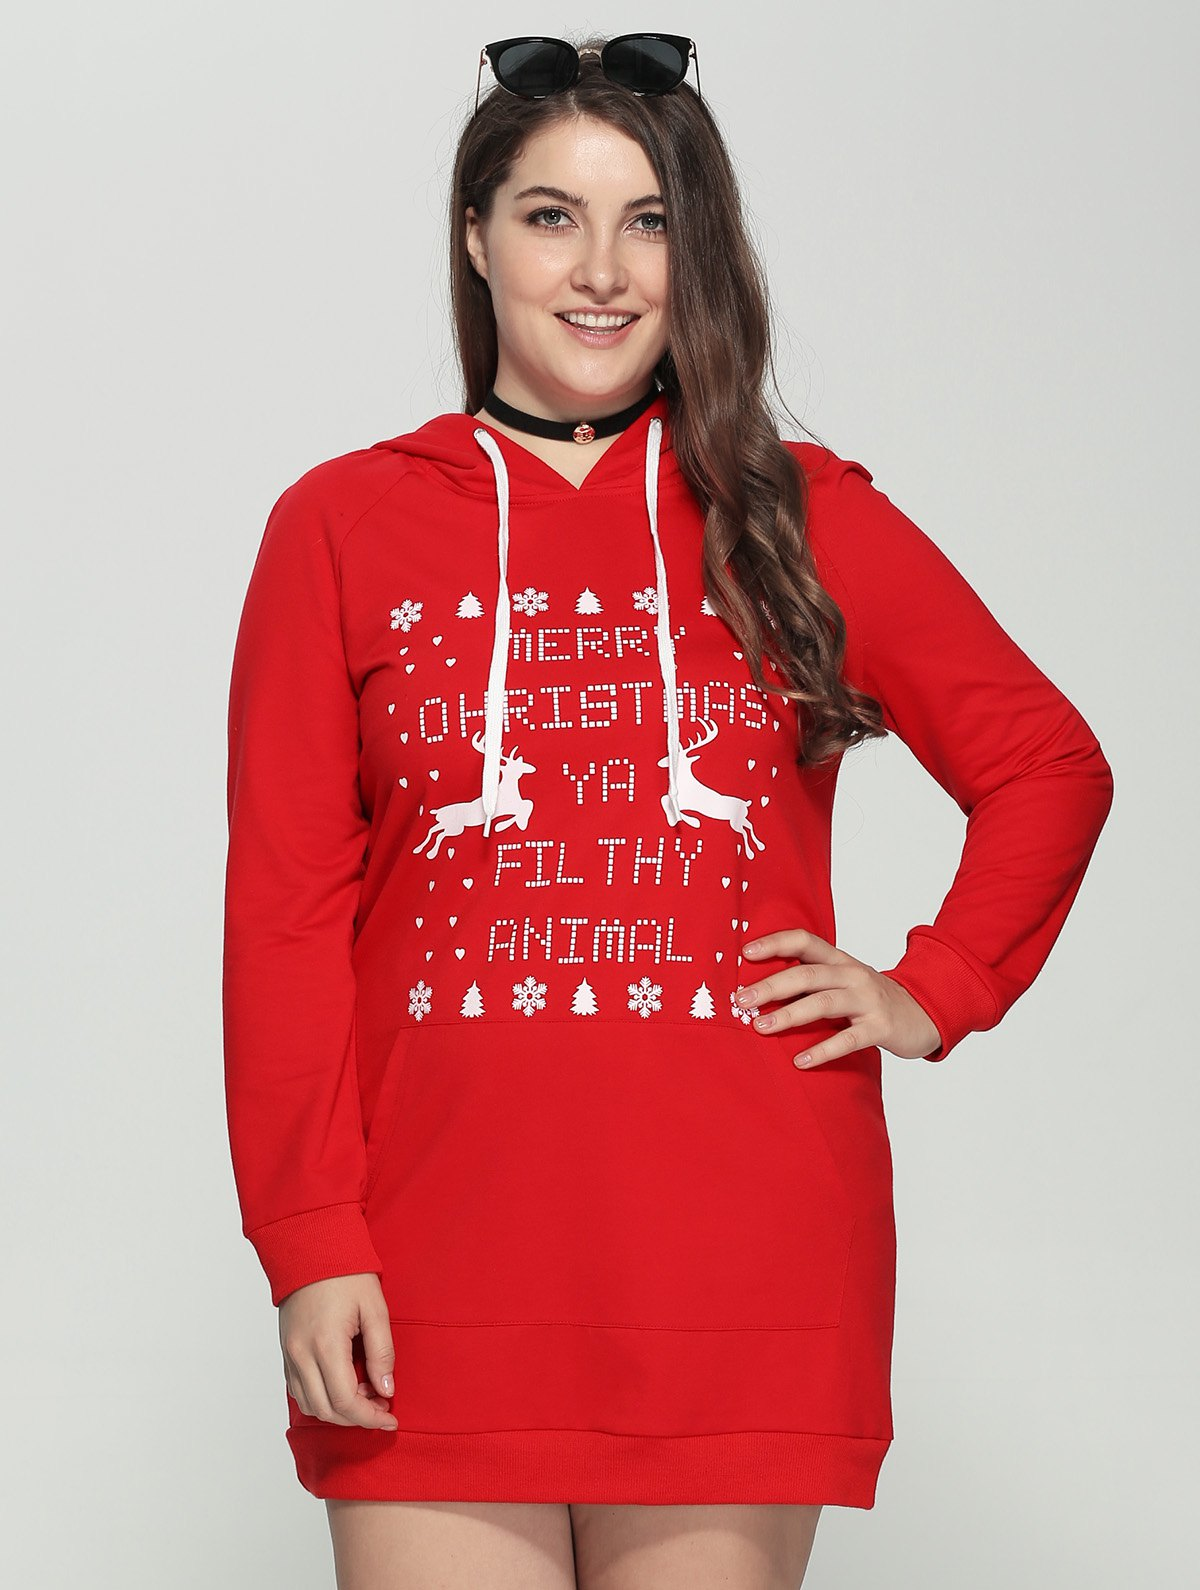 Plus Size Long Sleeve Letter Print Christmas Hooded Sweatshirt DressWOMEN<br><br>Size: 2XL; Color: RED; Style: Casual; Material: Polyester; Silhouette: Straight; Dresses Length: Mini; Neckline: Hooded; Sleeve Length: Long Sleeves; Pattern Type: Letter; With Belt: No; Season: Fall,Spring; Weight: 0.550kg; Package Contents: 1 x Dress;